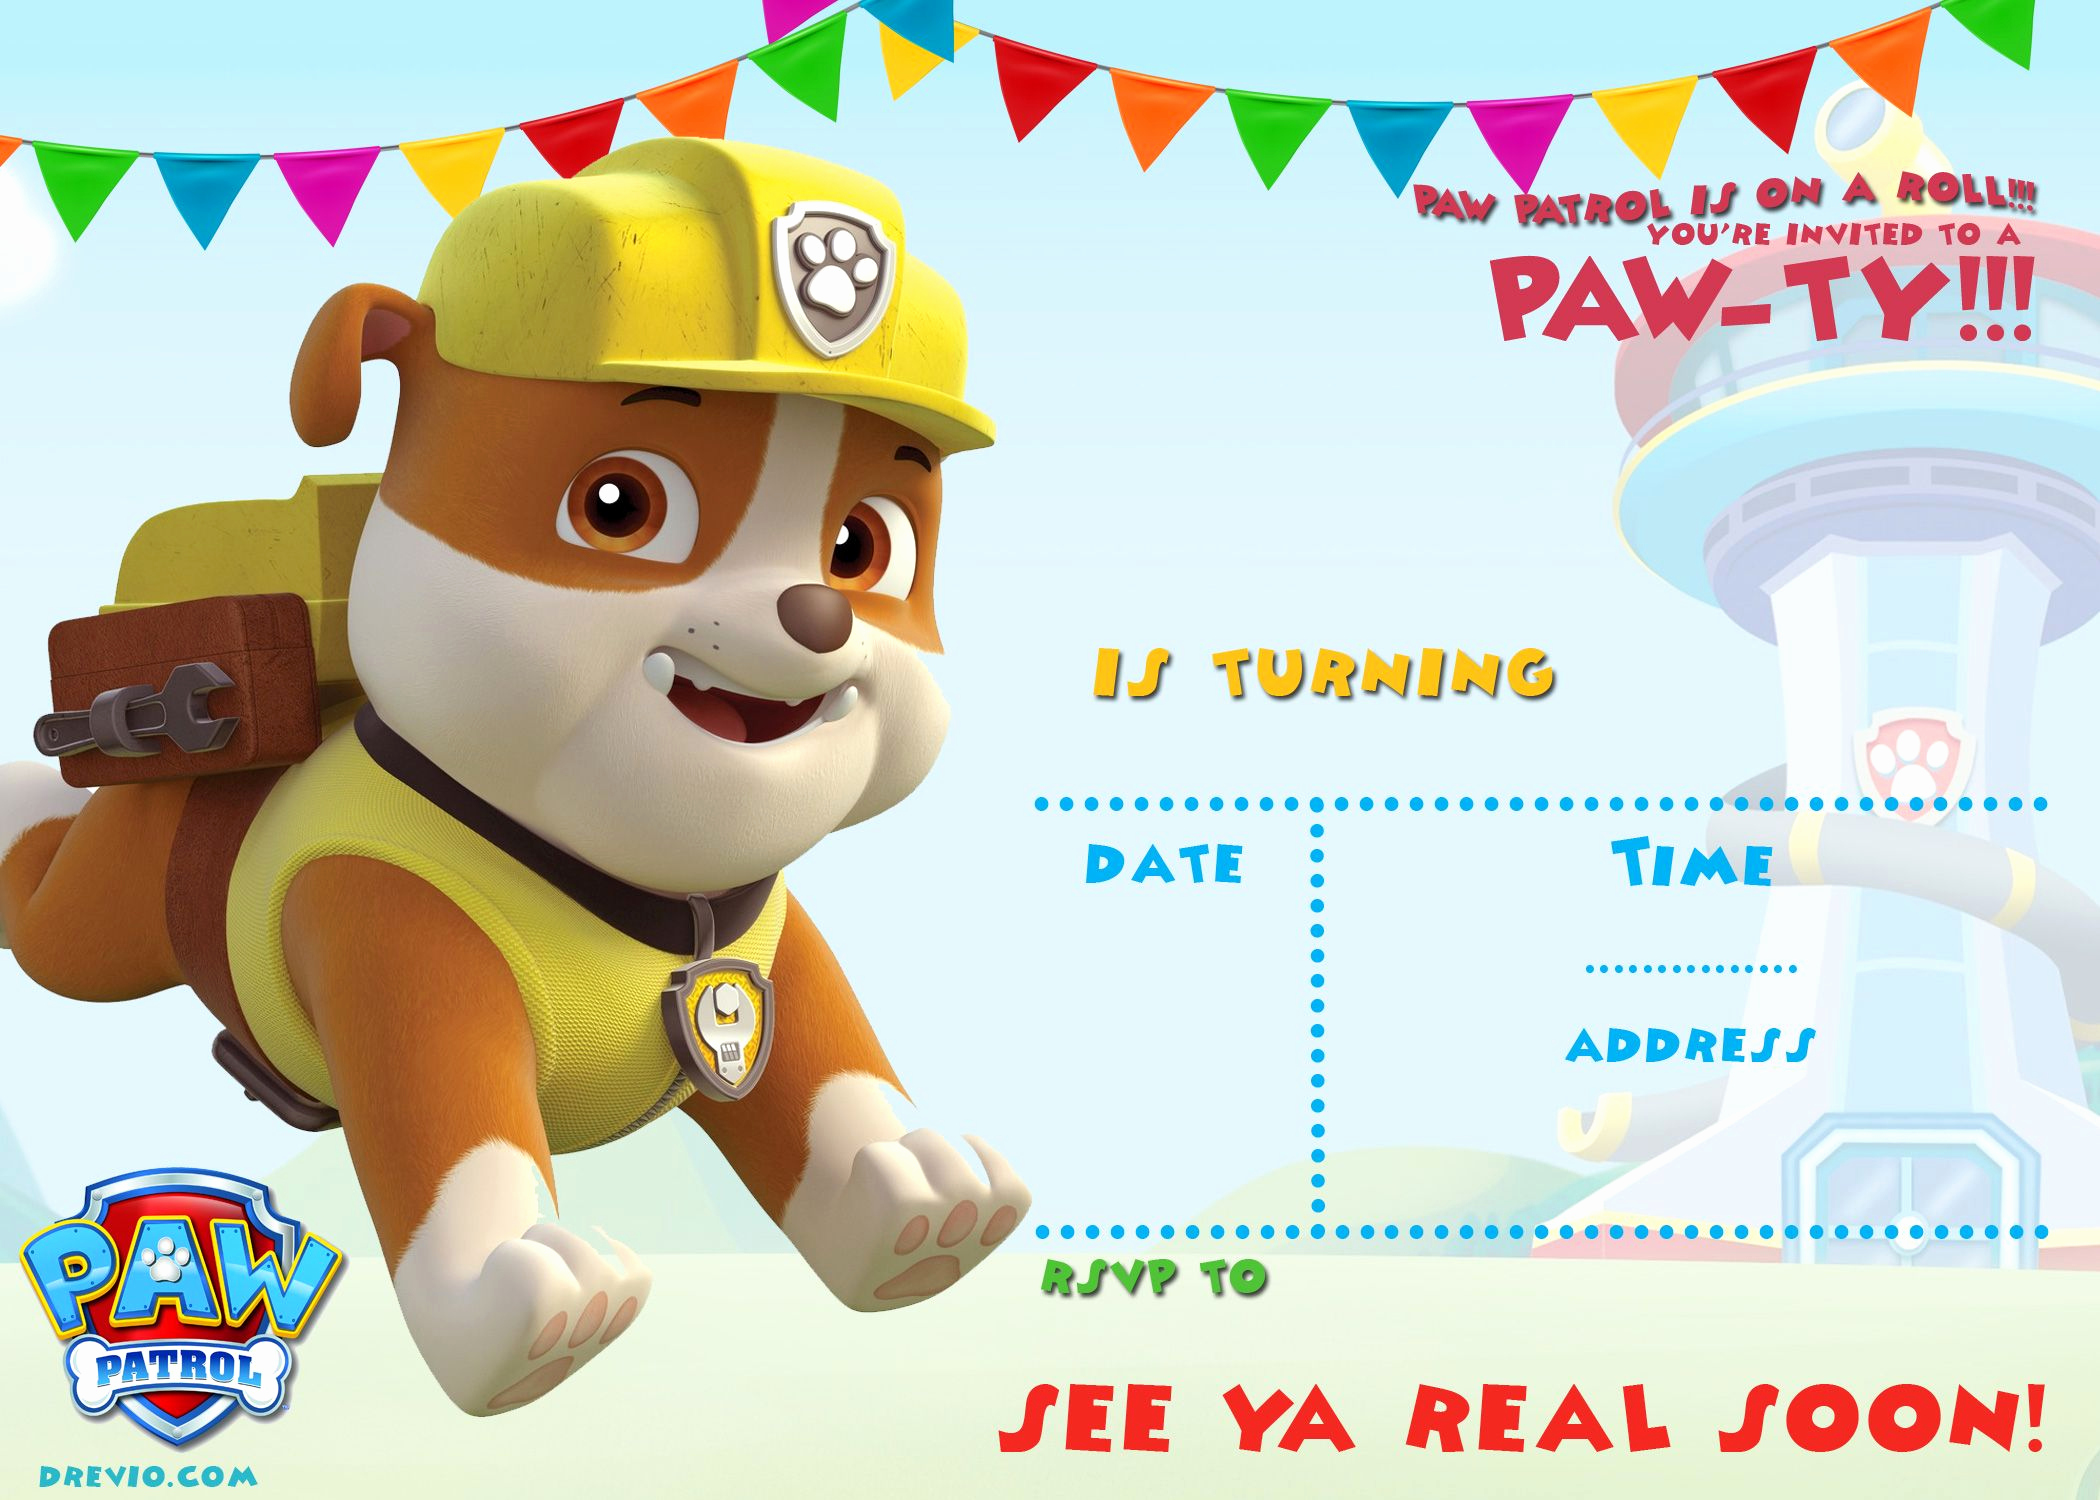 Paw Patrol Invitation Template Free Elegant Free Printable Paw Patrol Invitation Template All